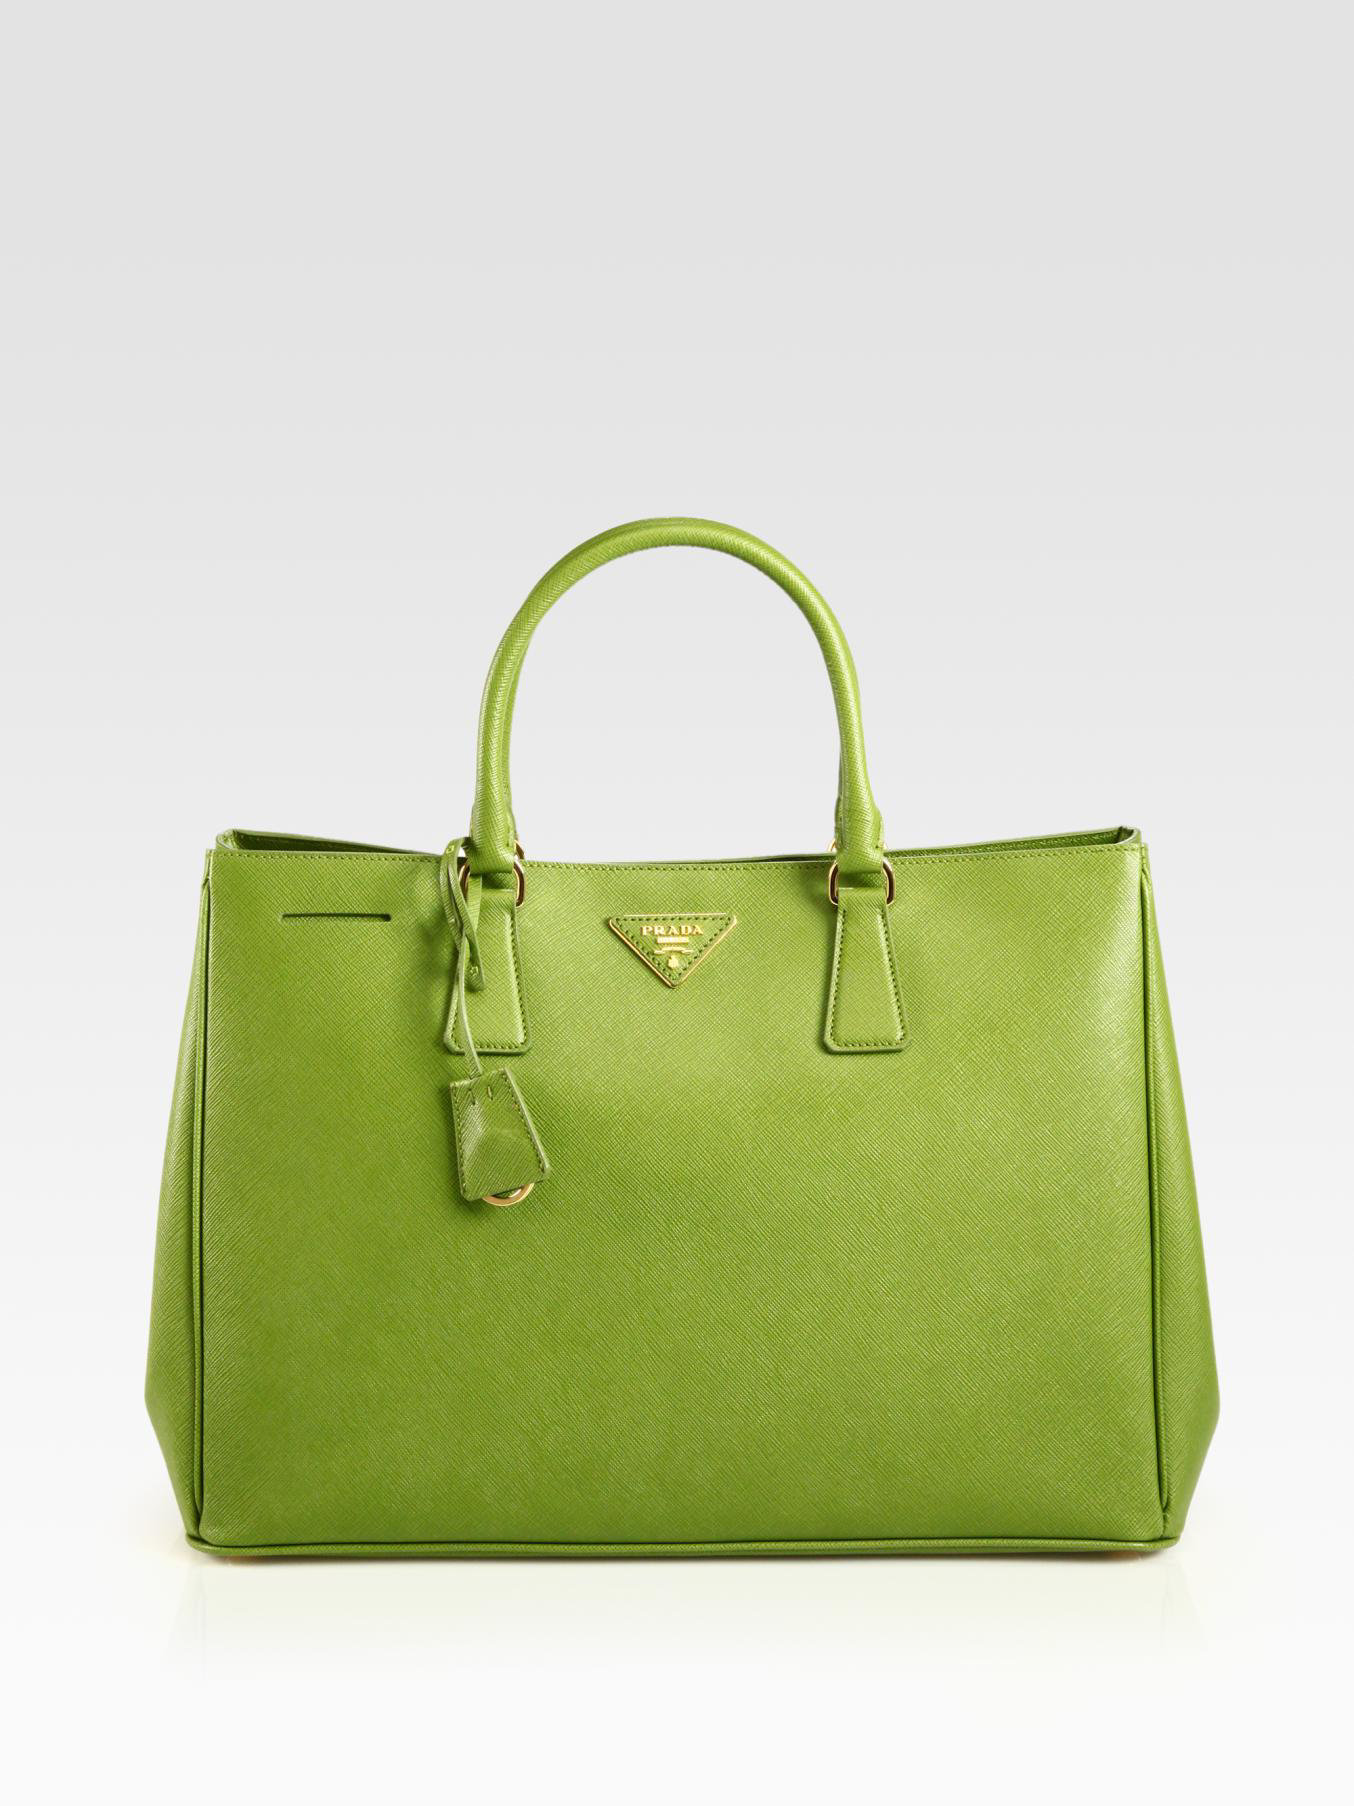 f666657f1589 ... discount code for best lyst prada saffiano lux tote in green 5d036  a7b70 c0984 0ec7f